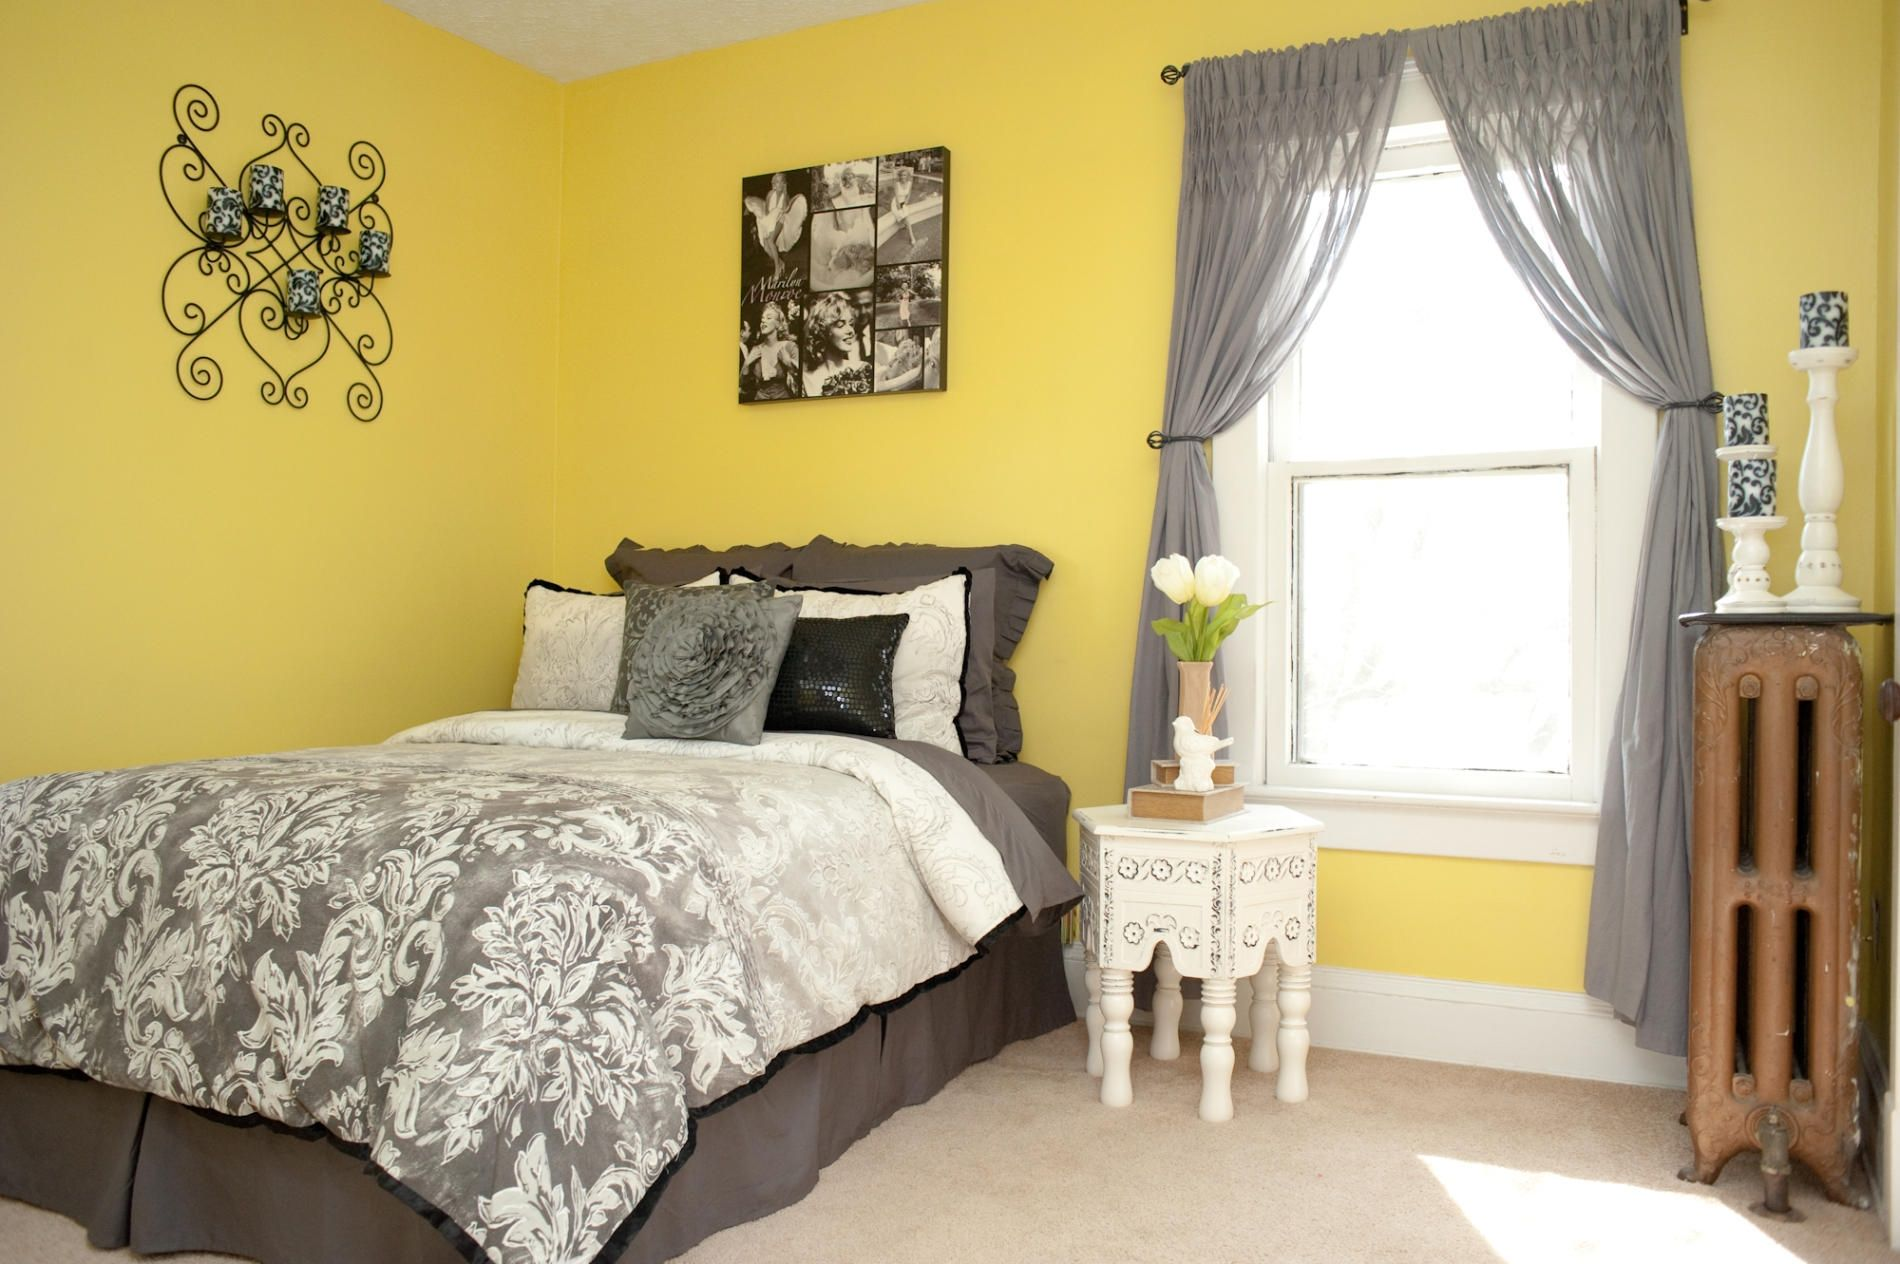 Bright Yellow Bedroom Walls | Bedroom Design | Pinterest | Bedrooms ...